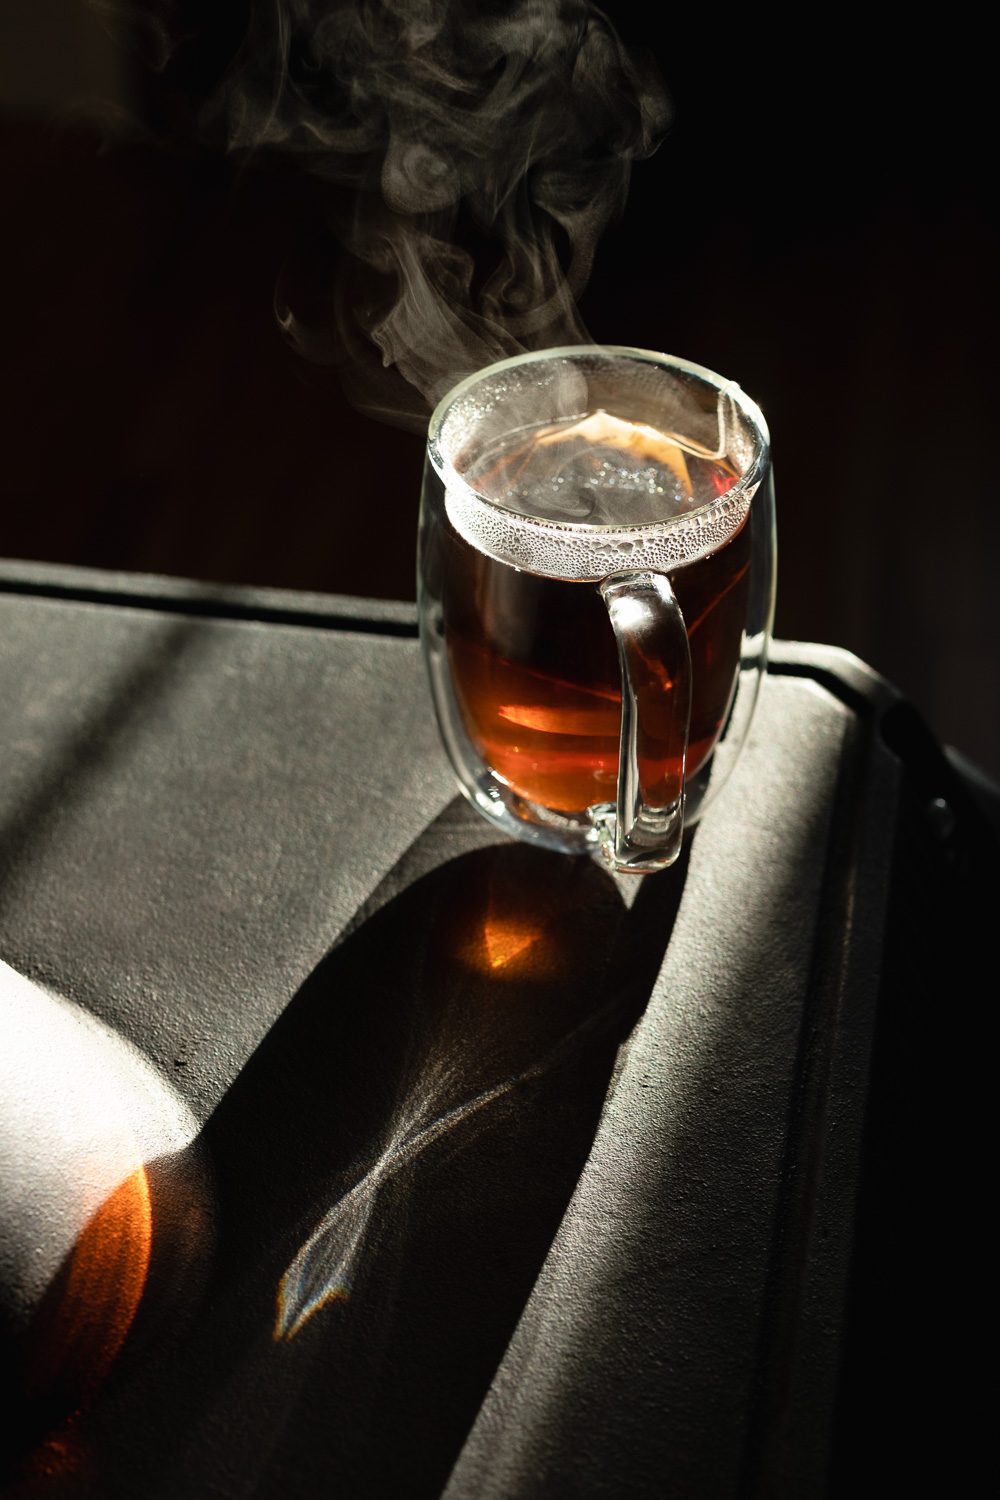 steaming tea in a glass mug in the afternoon sunlight